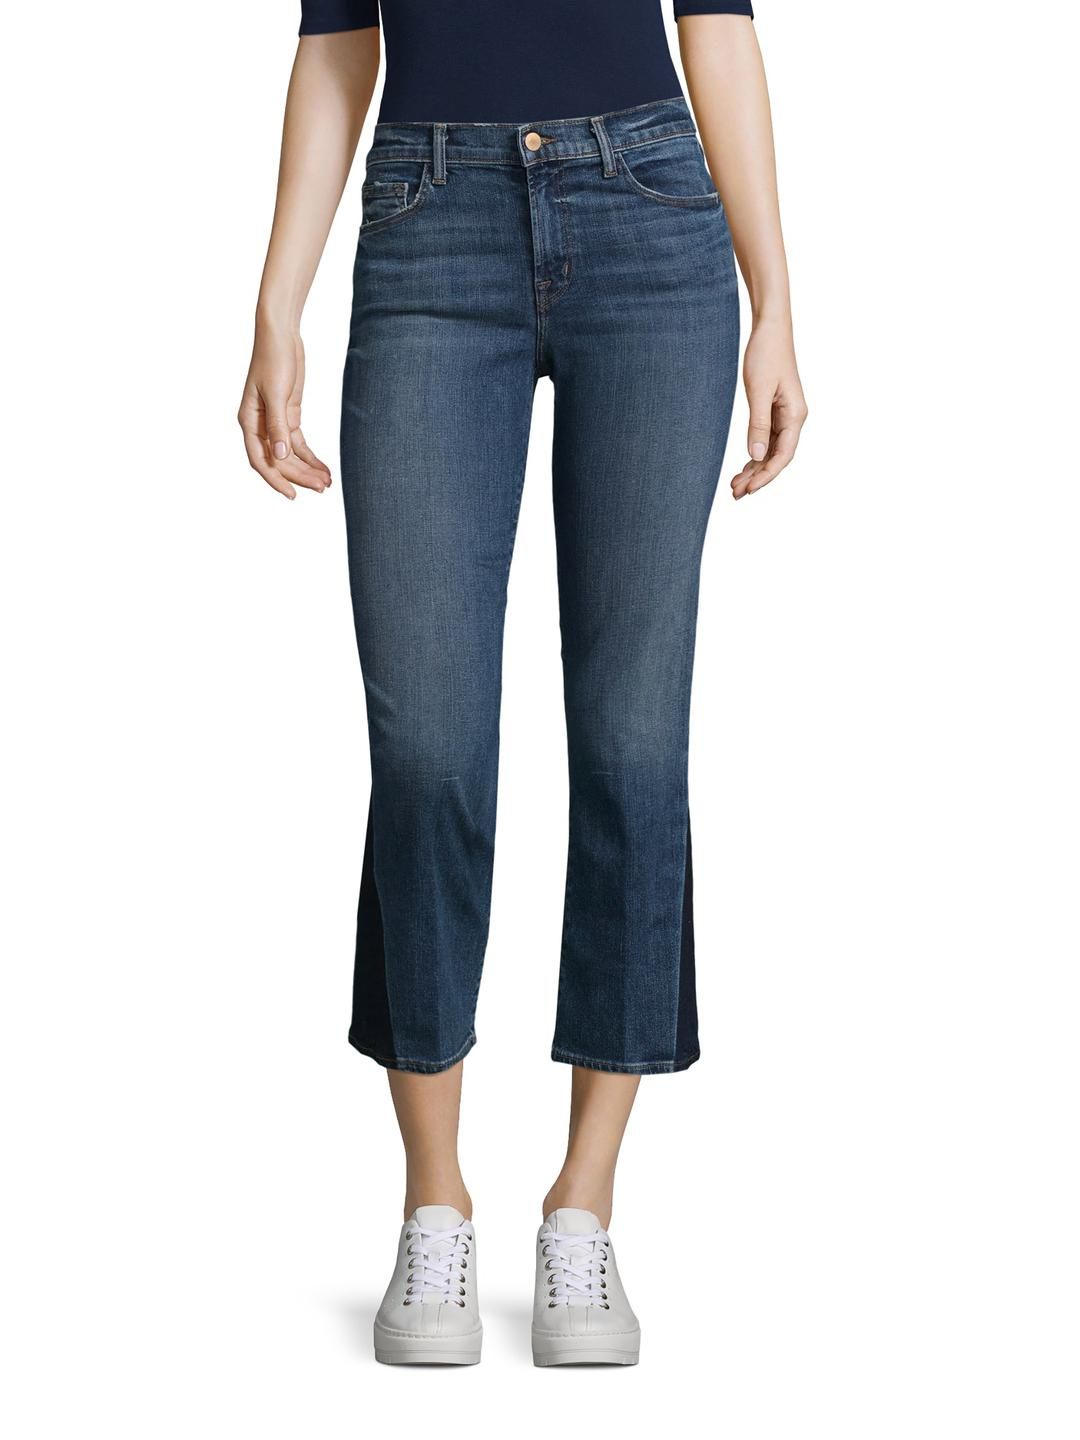 Selena mid-rise cropped jeans - Blue J Brand Sale Best Prices Exclusive For Sale Outlet Geniue Stockist ZivoAMrp6w